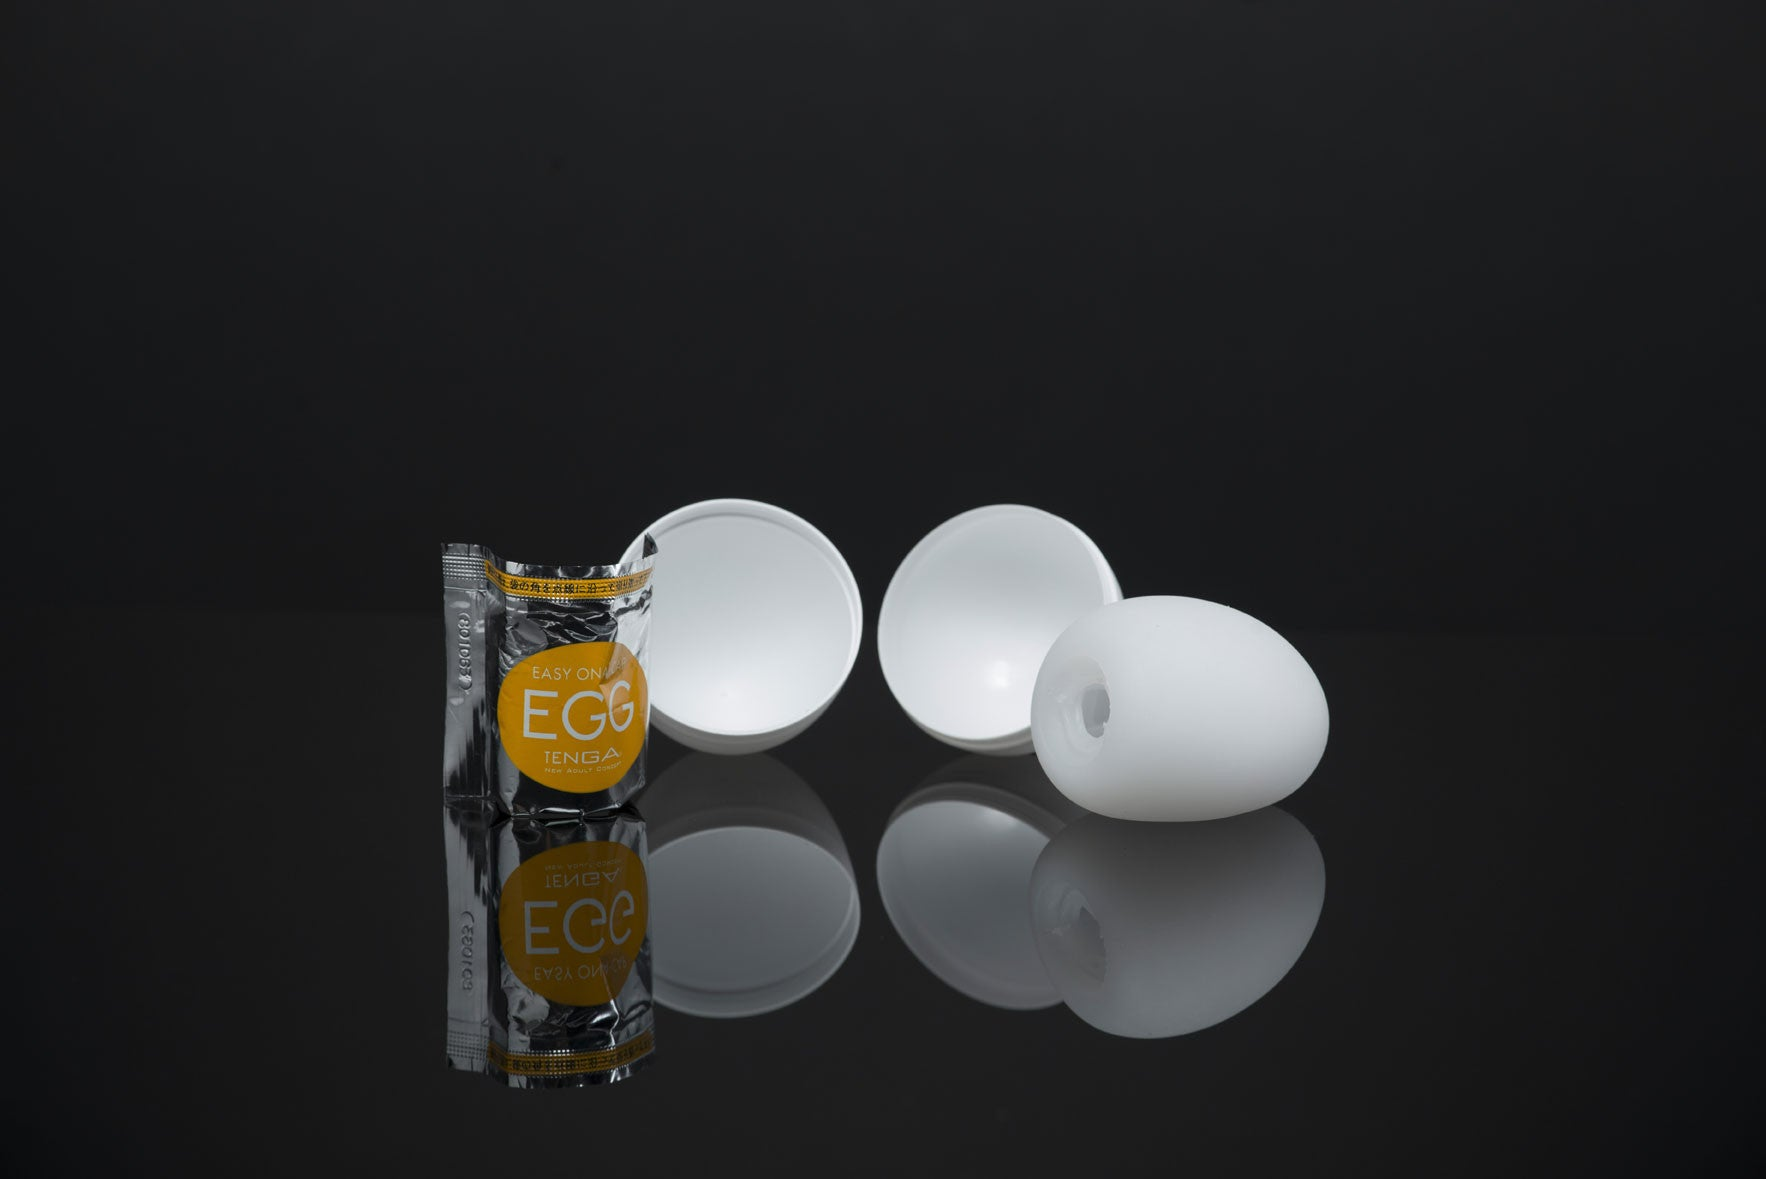 Tenga Egg internal view